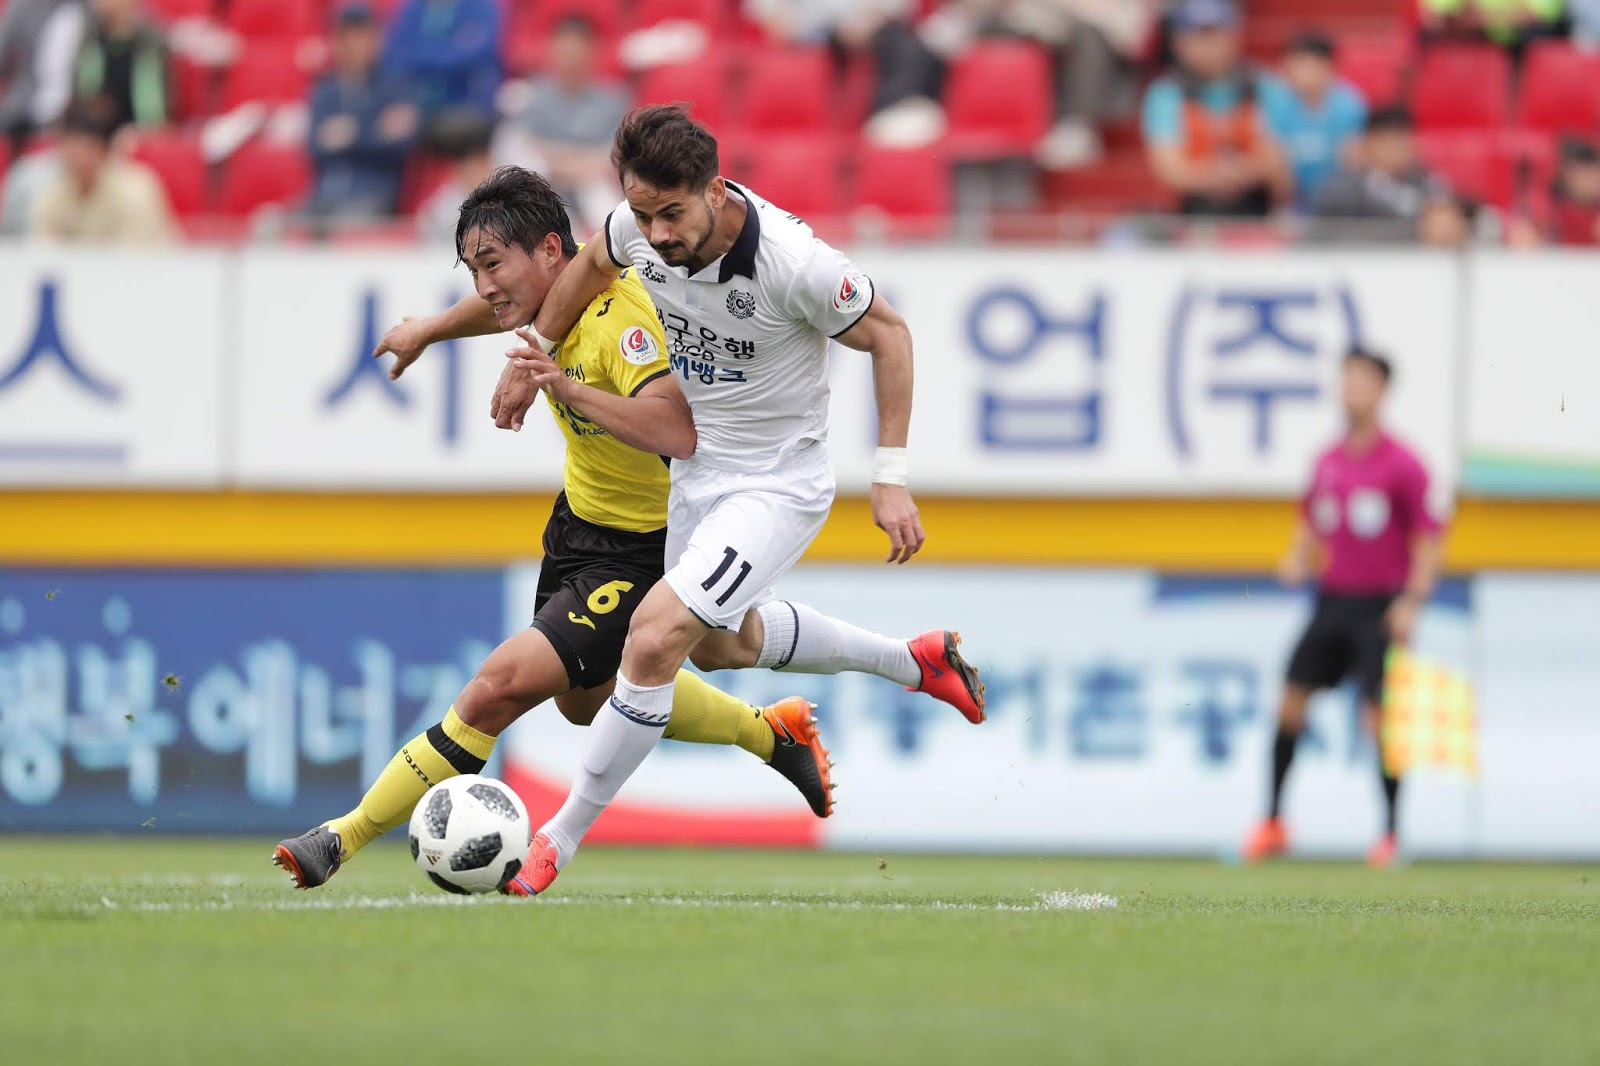 Preview: Daegu FC vs Jeonnam Dragons K League 1